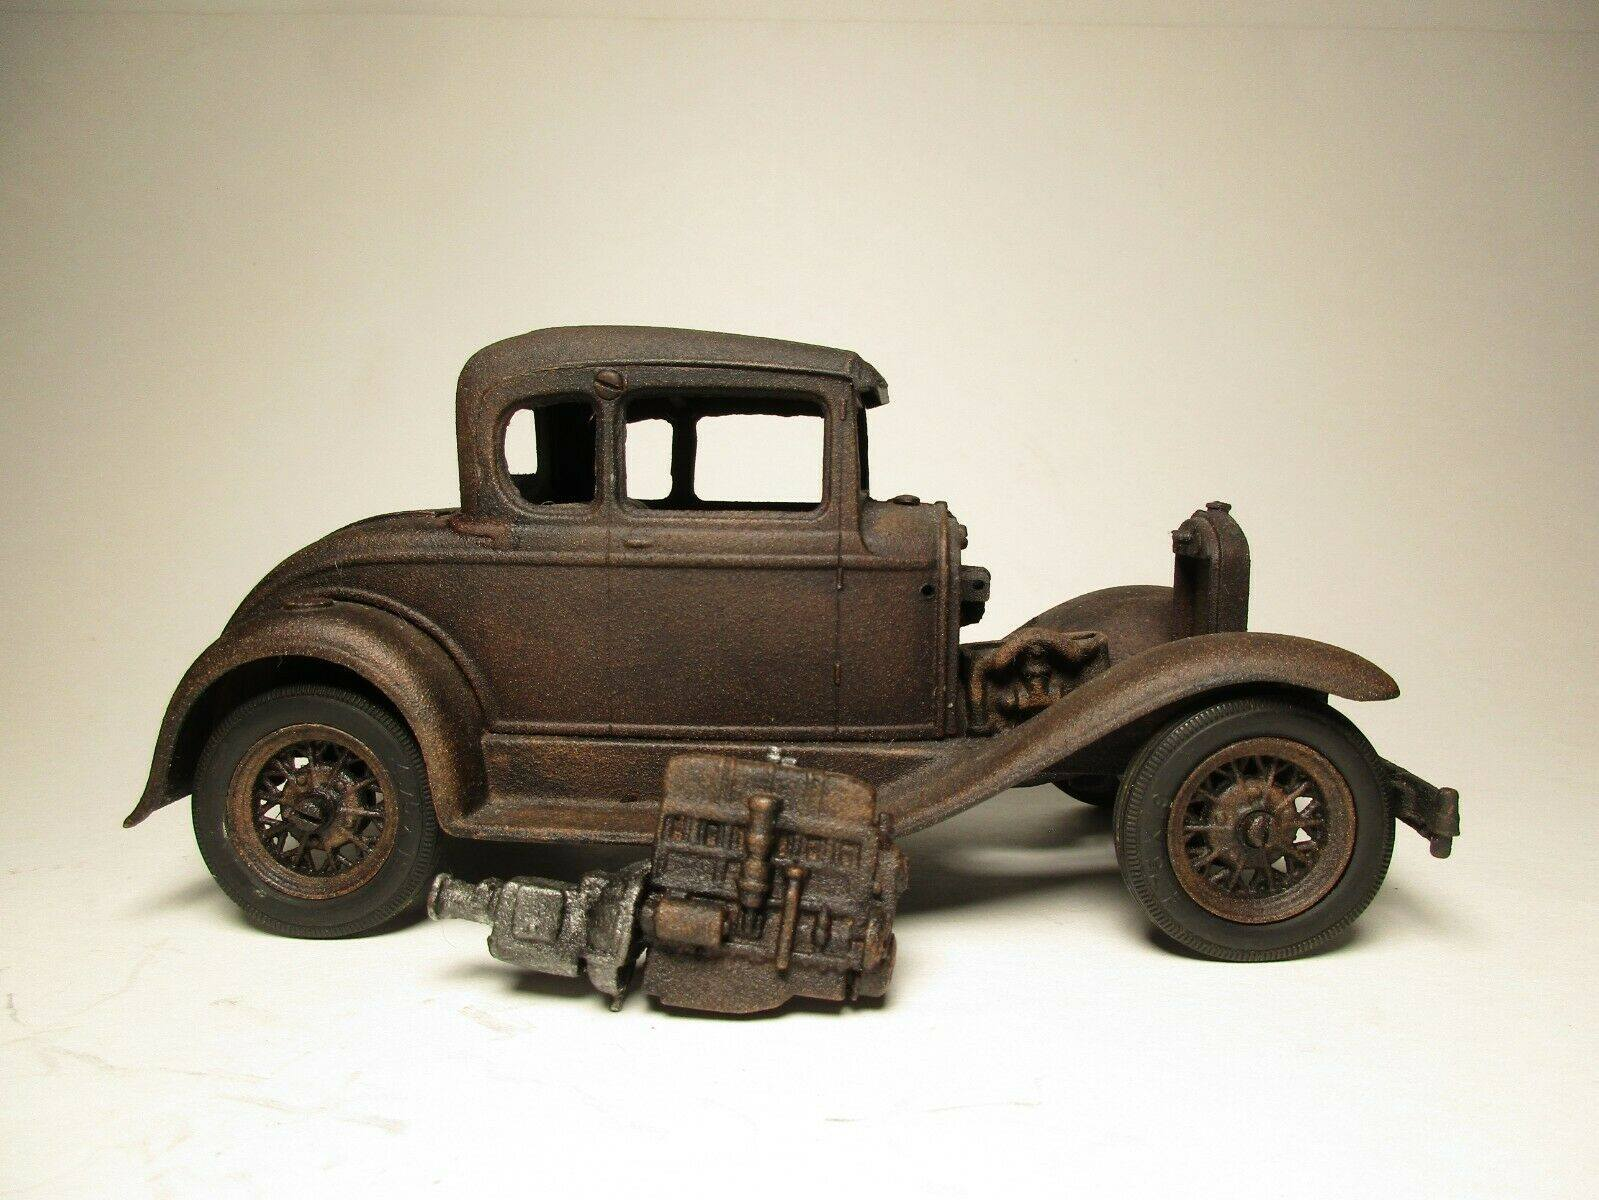 Vintage-Hubley-1932-Ford-Model-A-Coupe-and-Engine---Rusty-Weathered-Barn-Find-1